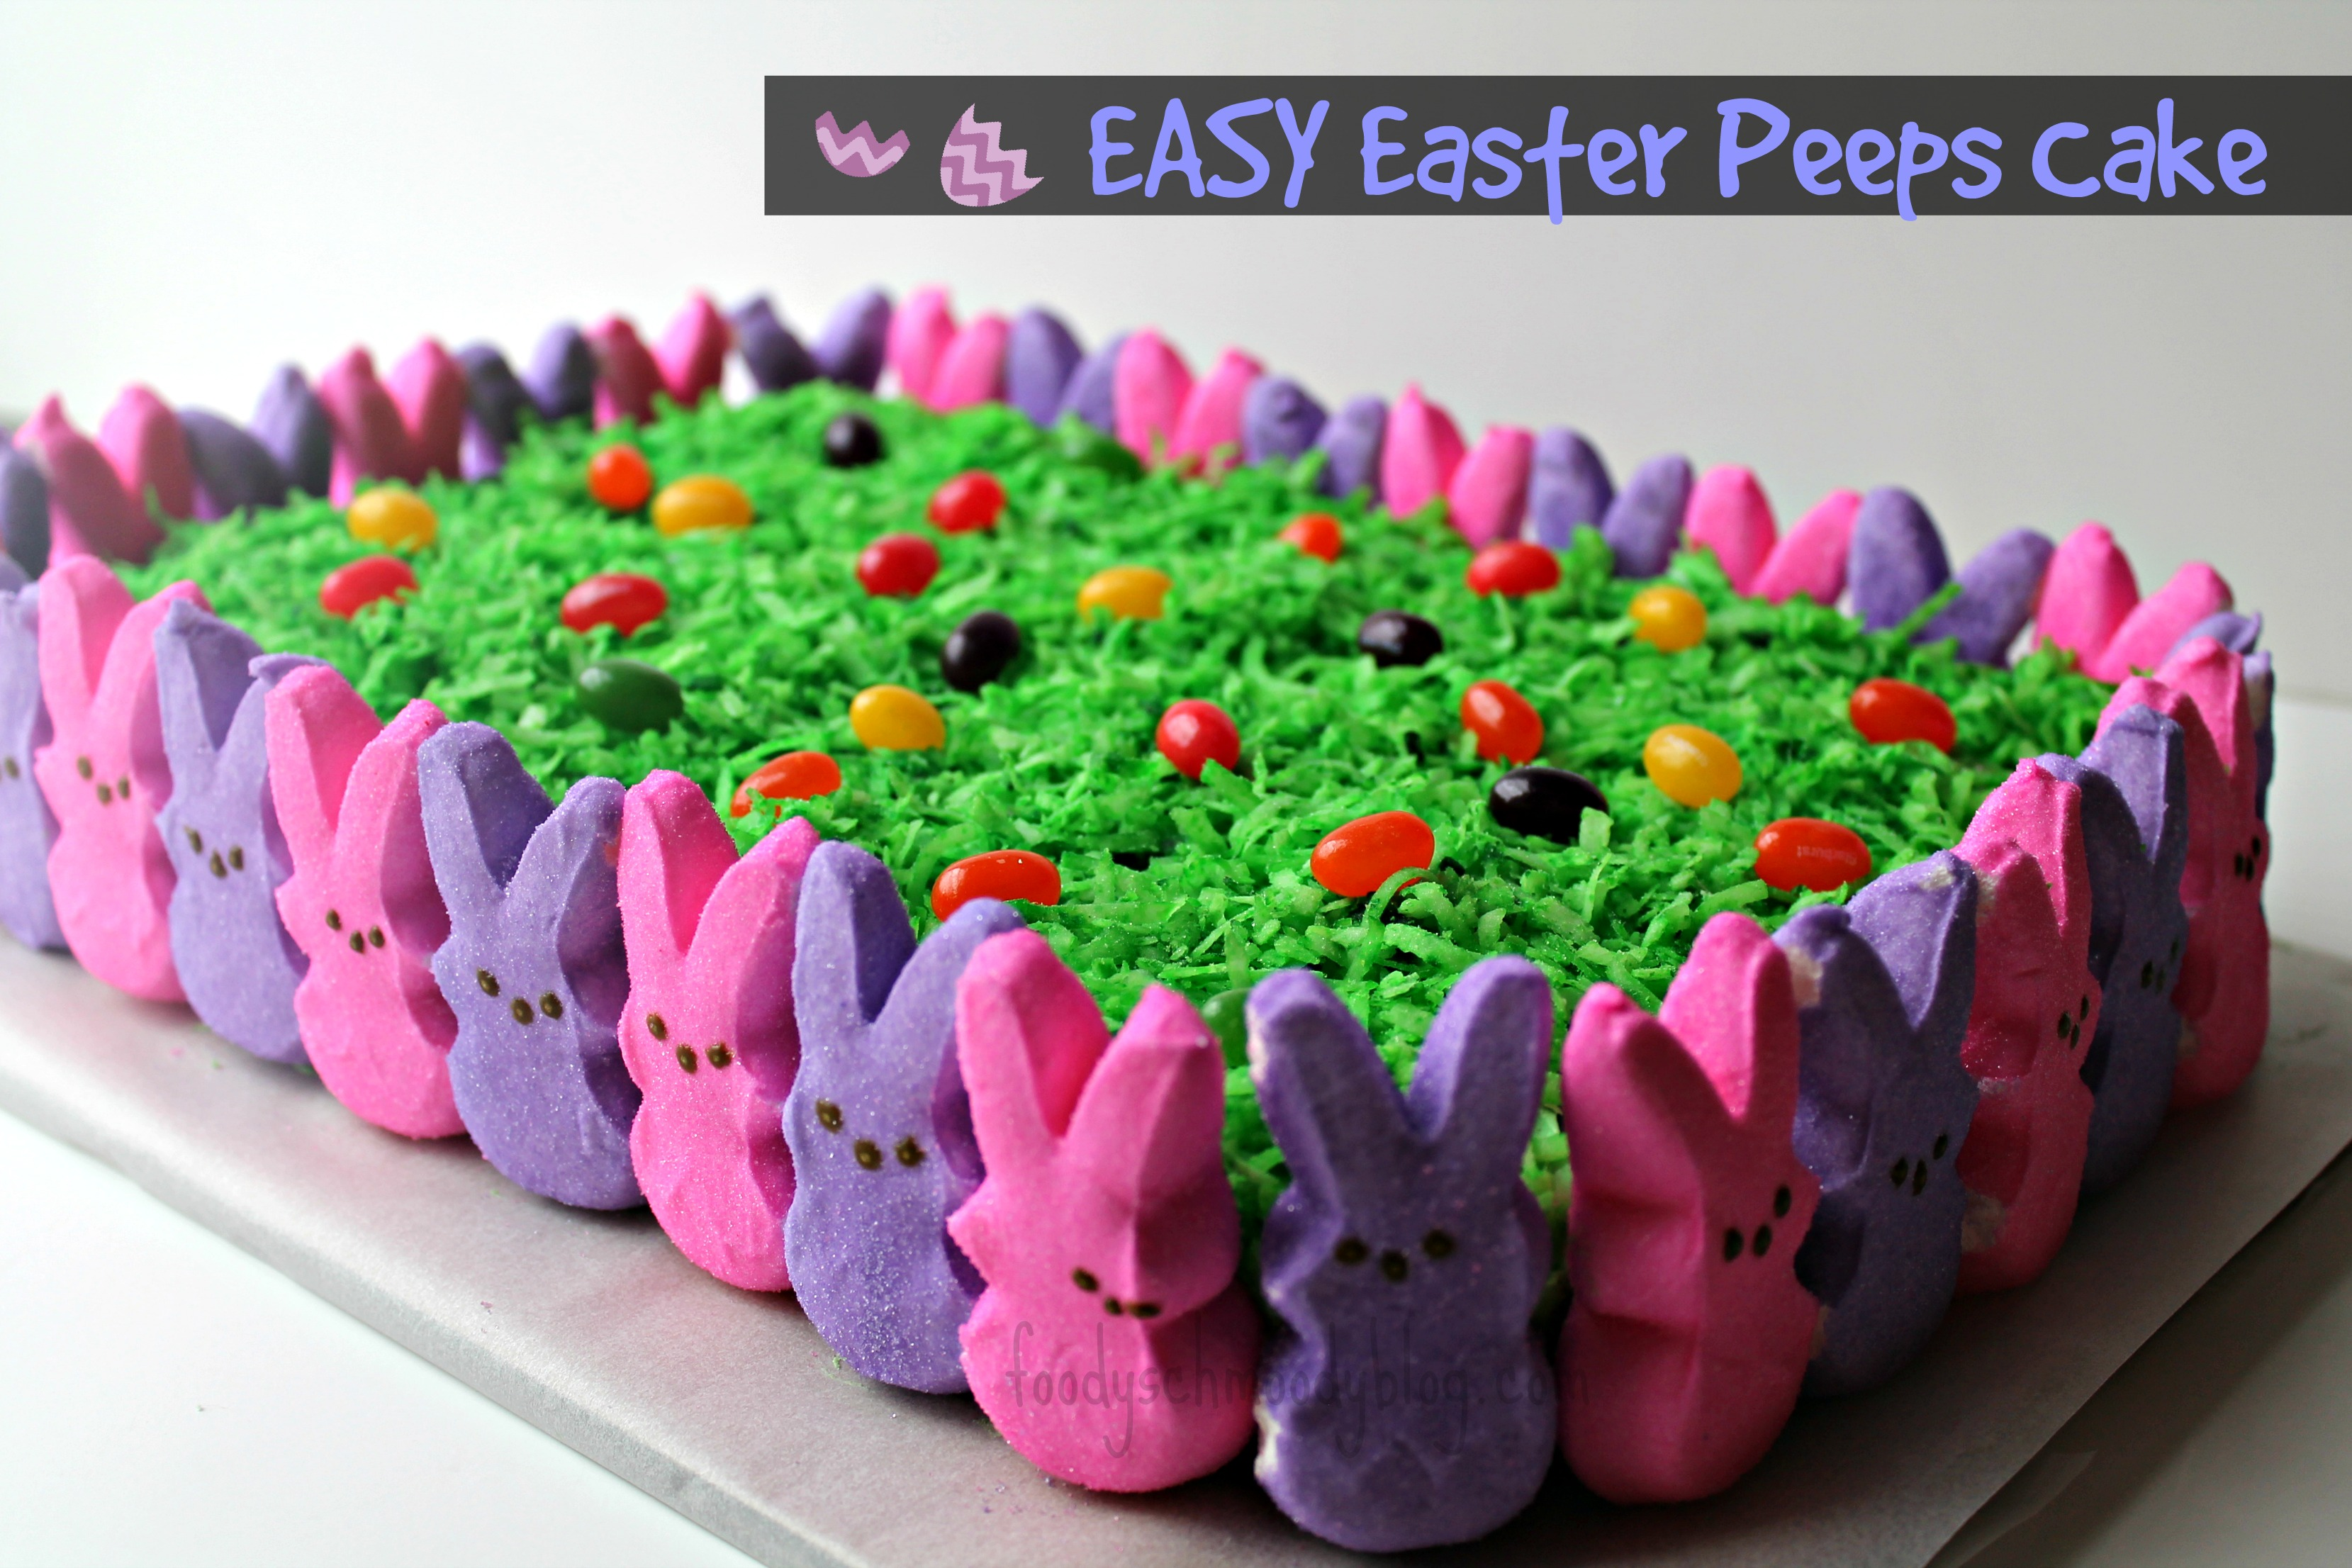 Delicious Easter Treats and Desserts10